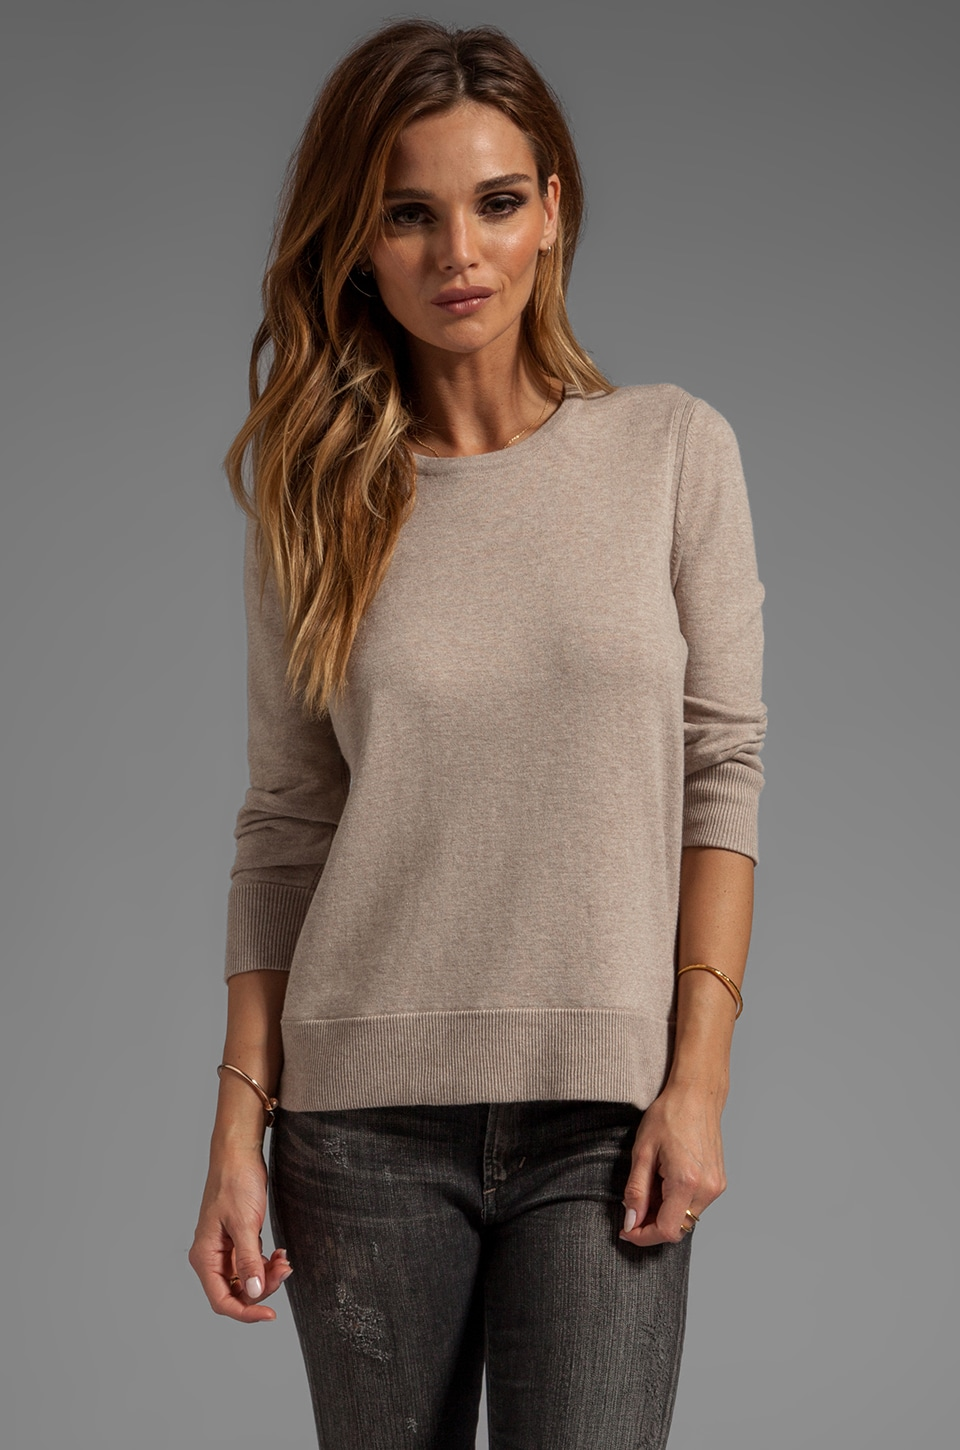 rag & bone/JEAN Casey Pullover Sweater in Oatmeal